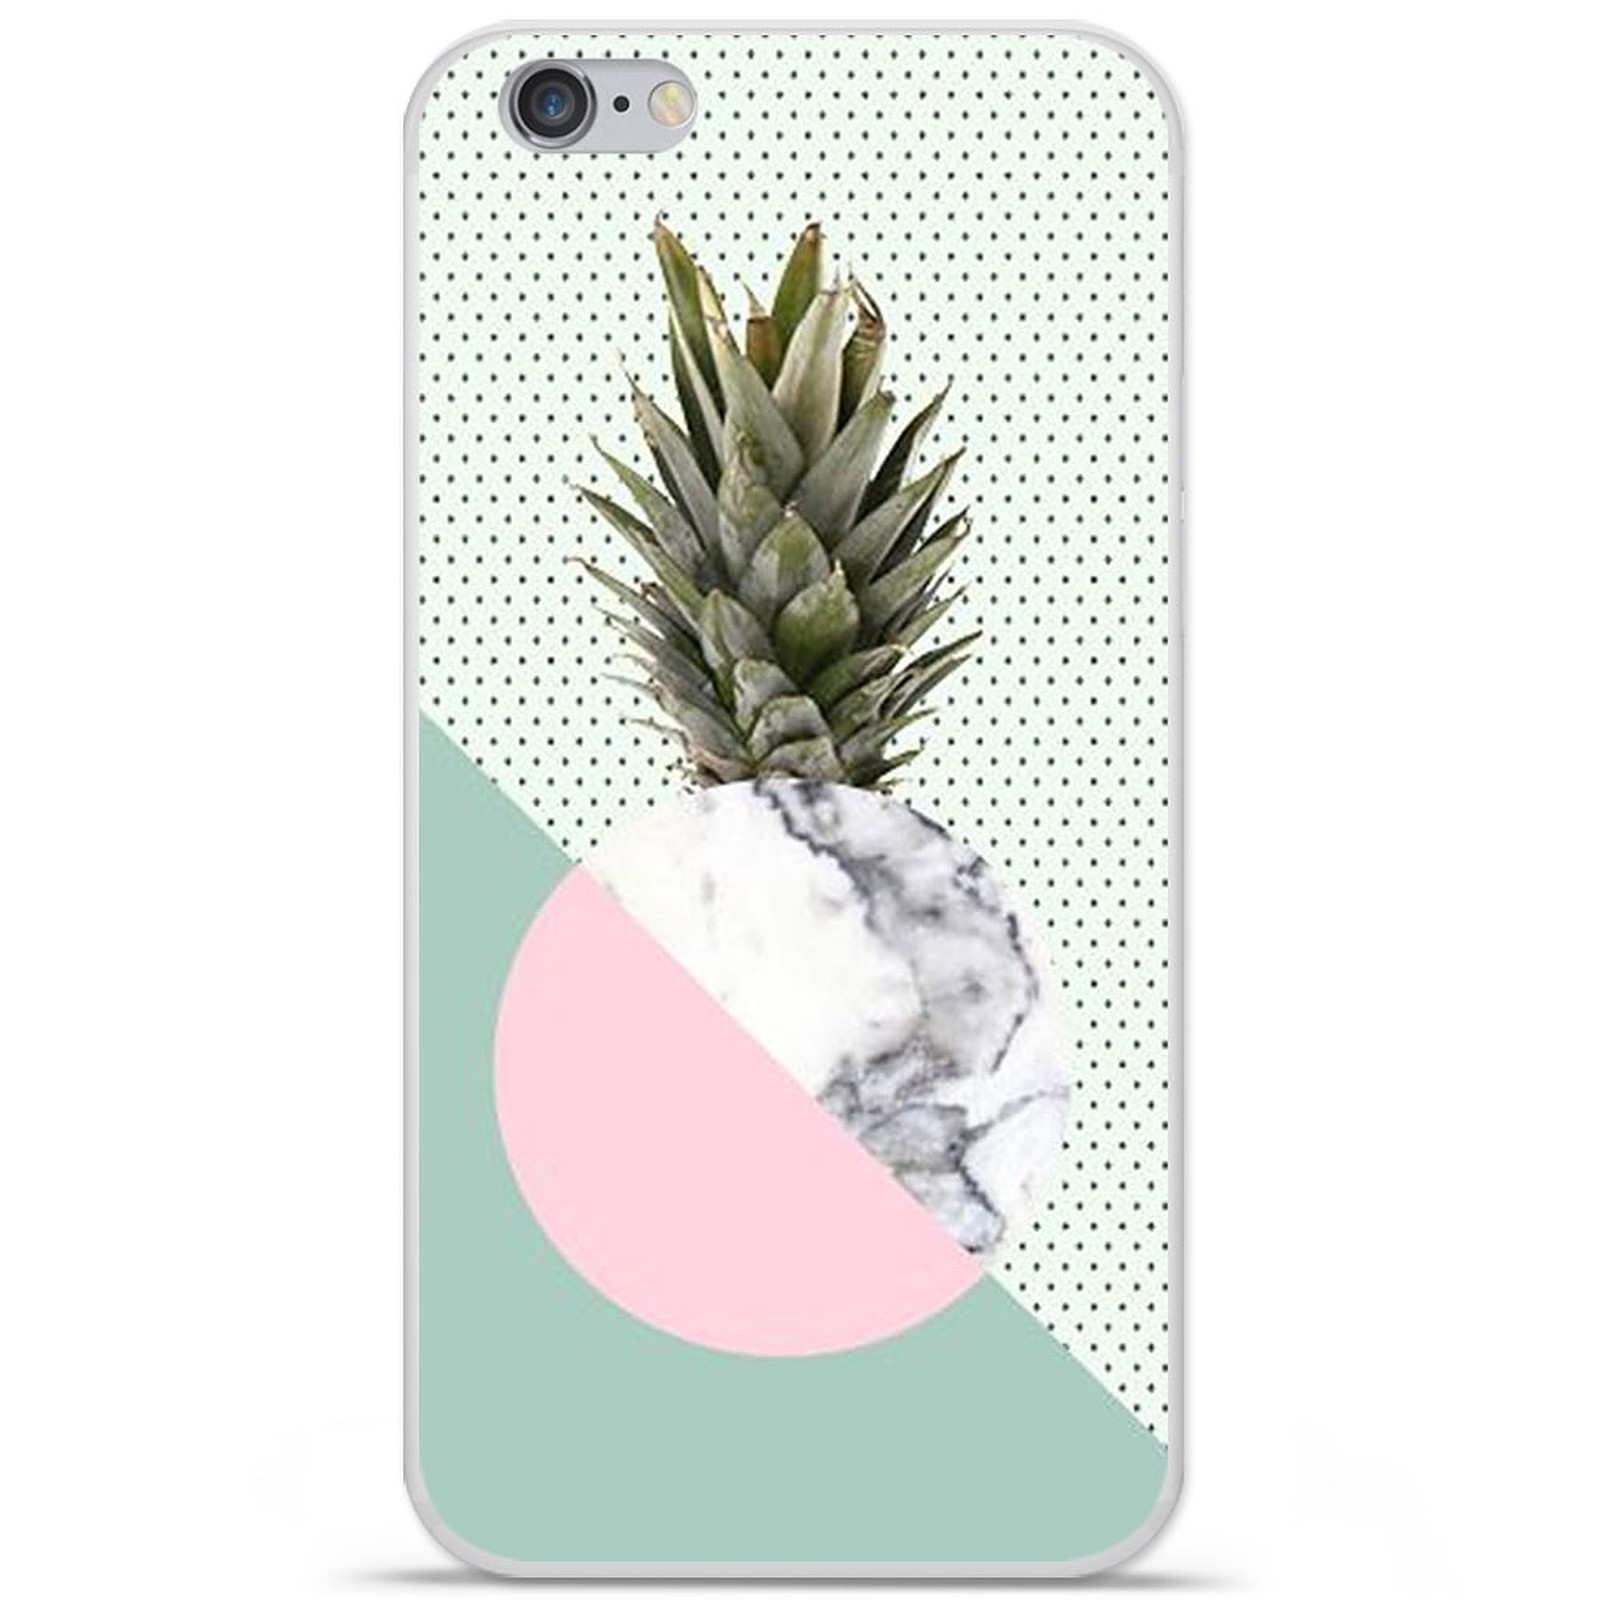 1001 Coques Coque silicone gel Apple IPhone 7 Plus motif Ananas marbre